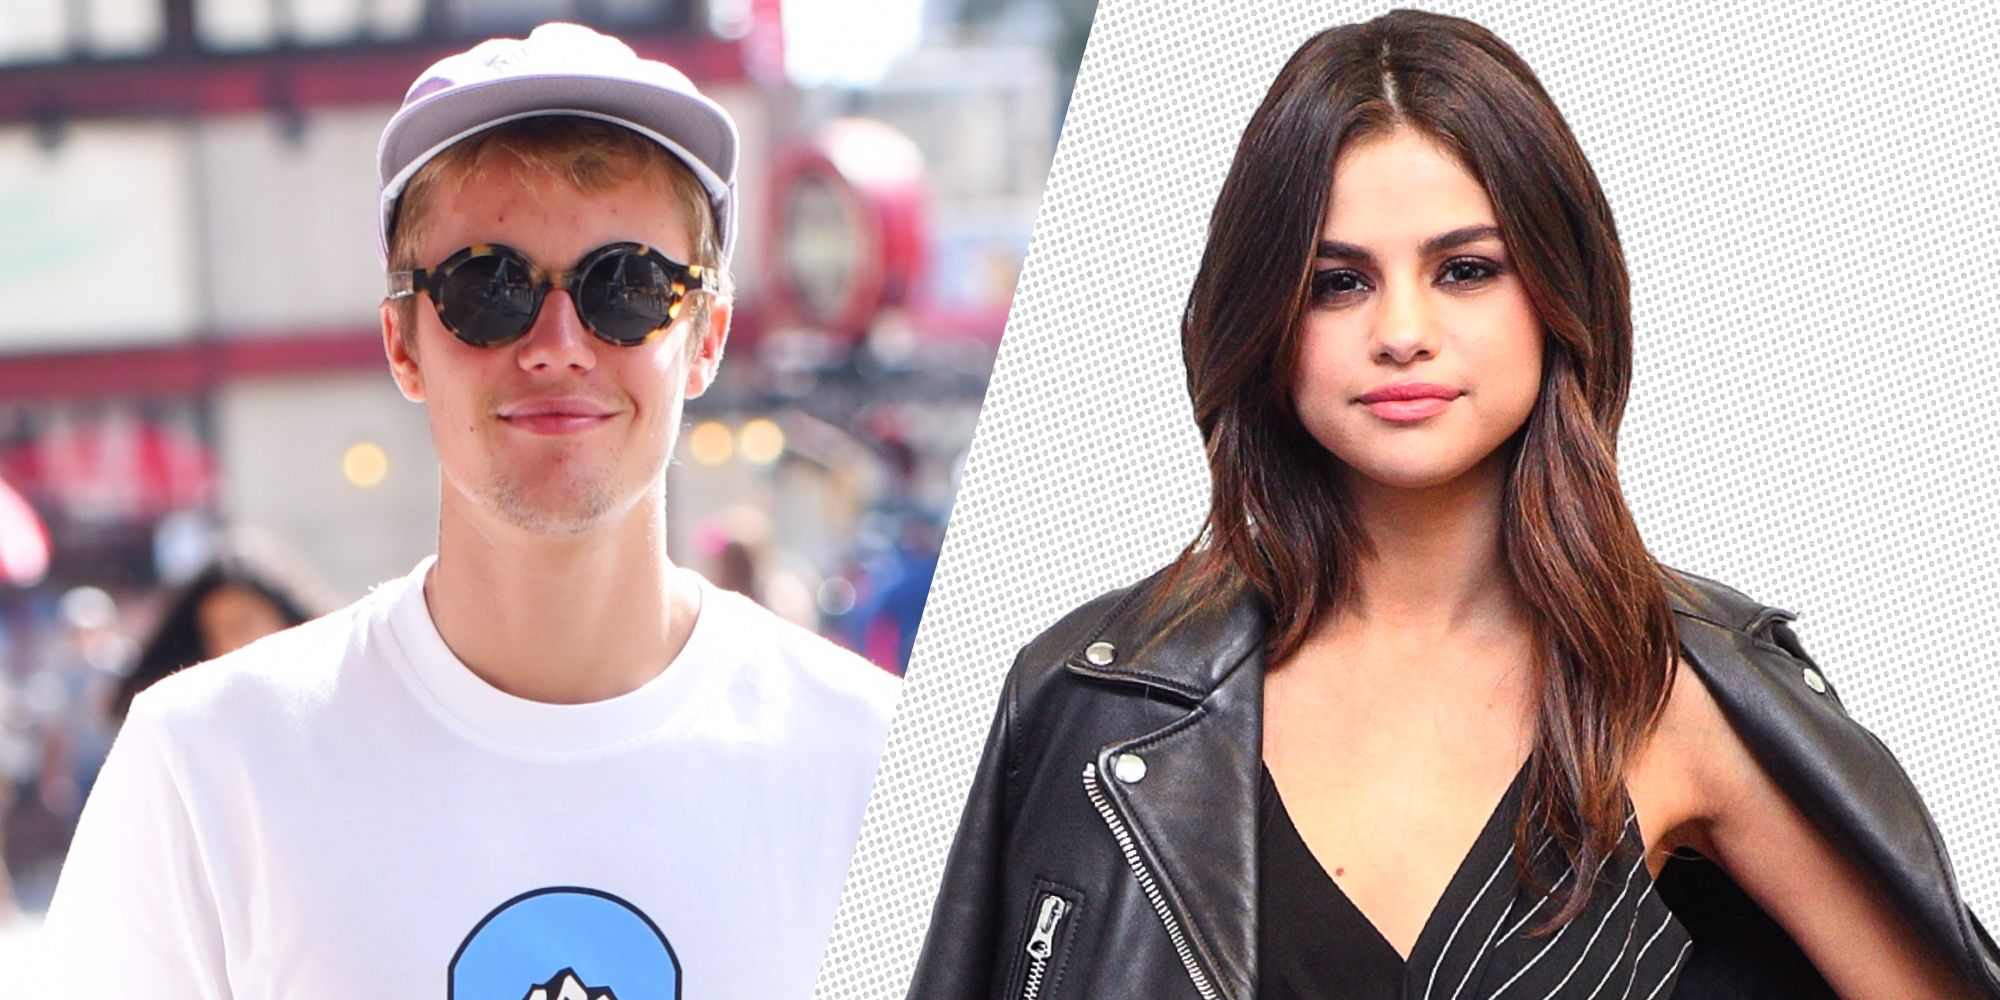 Justin Bieber Is Just Waiting for Selena Gomez to Say Theyre Official, According to Sources